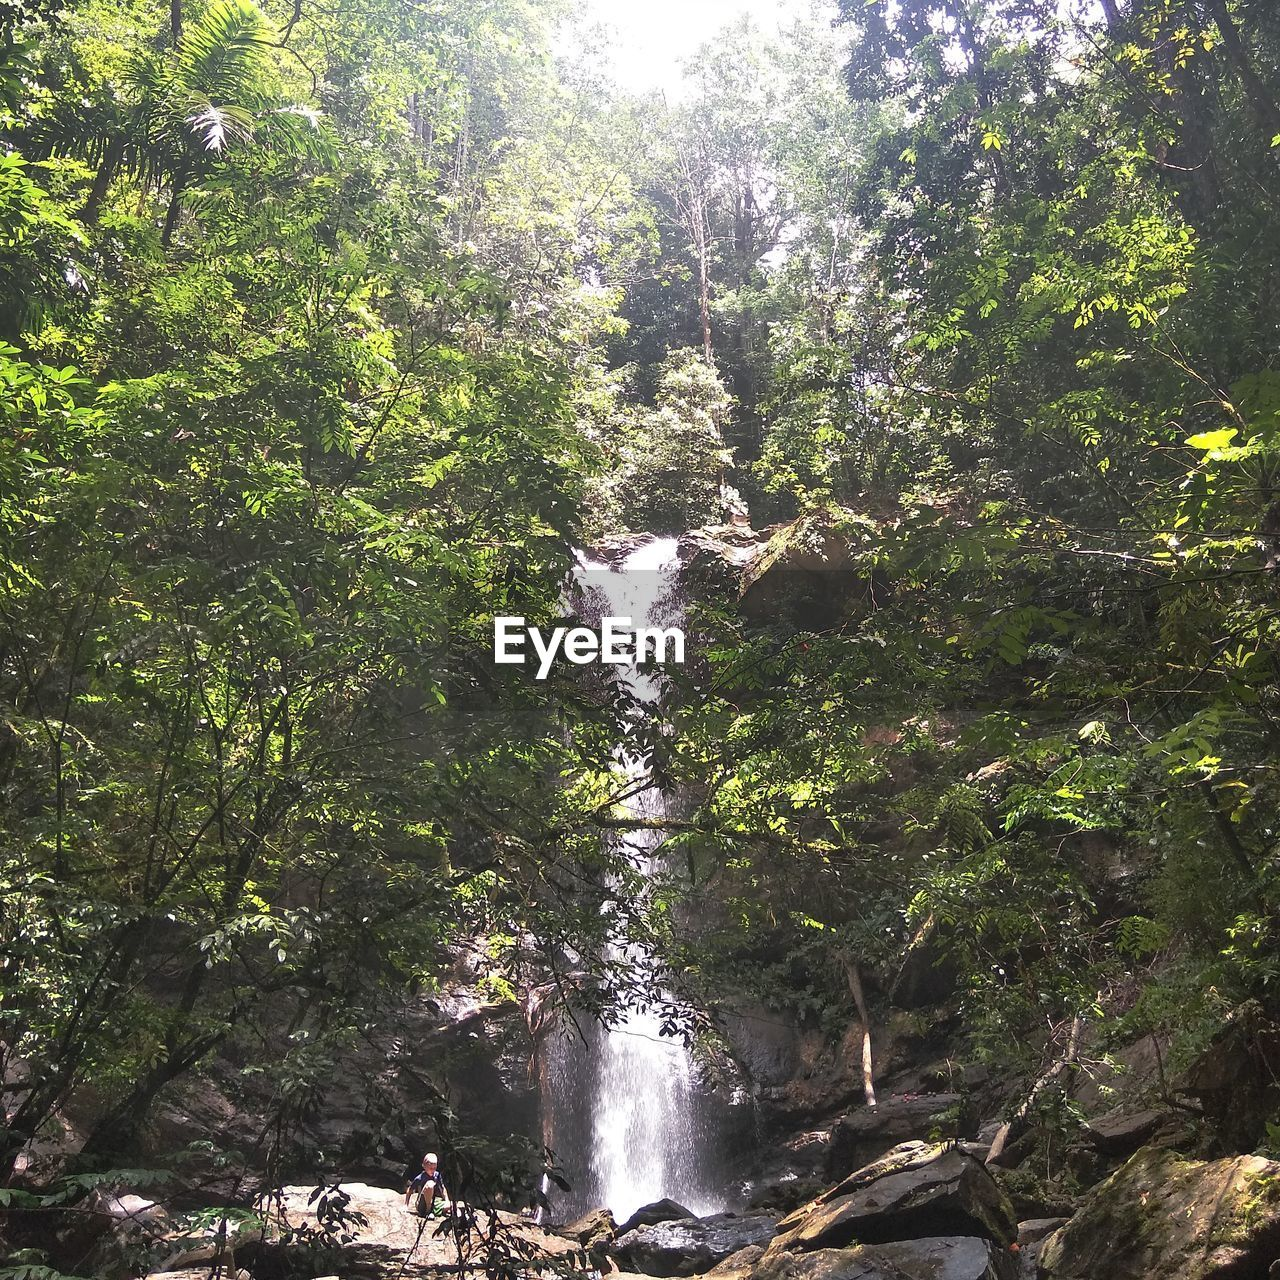 tree, plant, forest, land, water, nature, growth, scenics - nature, beauty in nature, environment, lush foliage, flowing water, waterfall, foliage, outdoors, motion, travel, day, people, rainforest, flowing